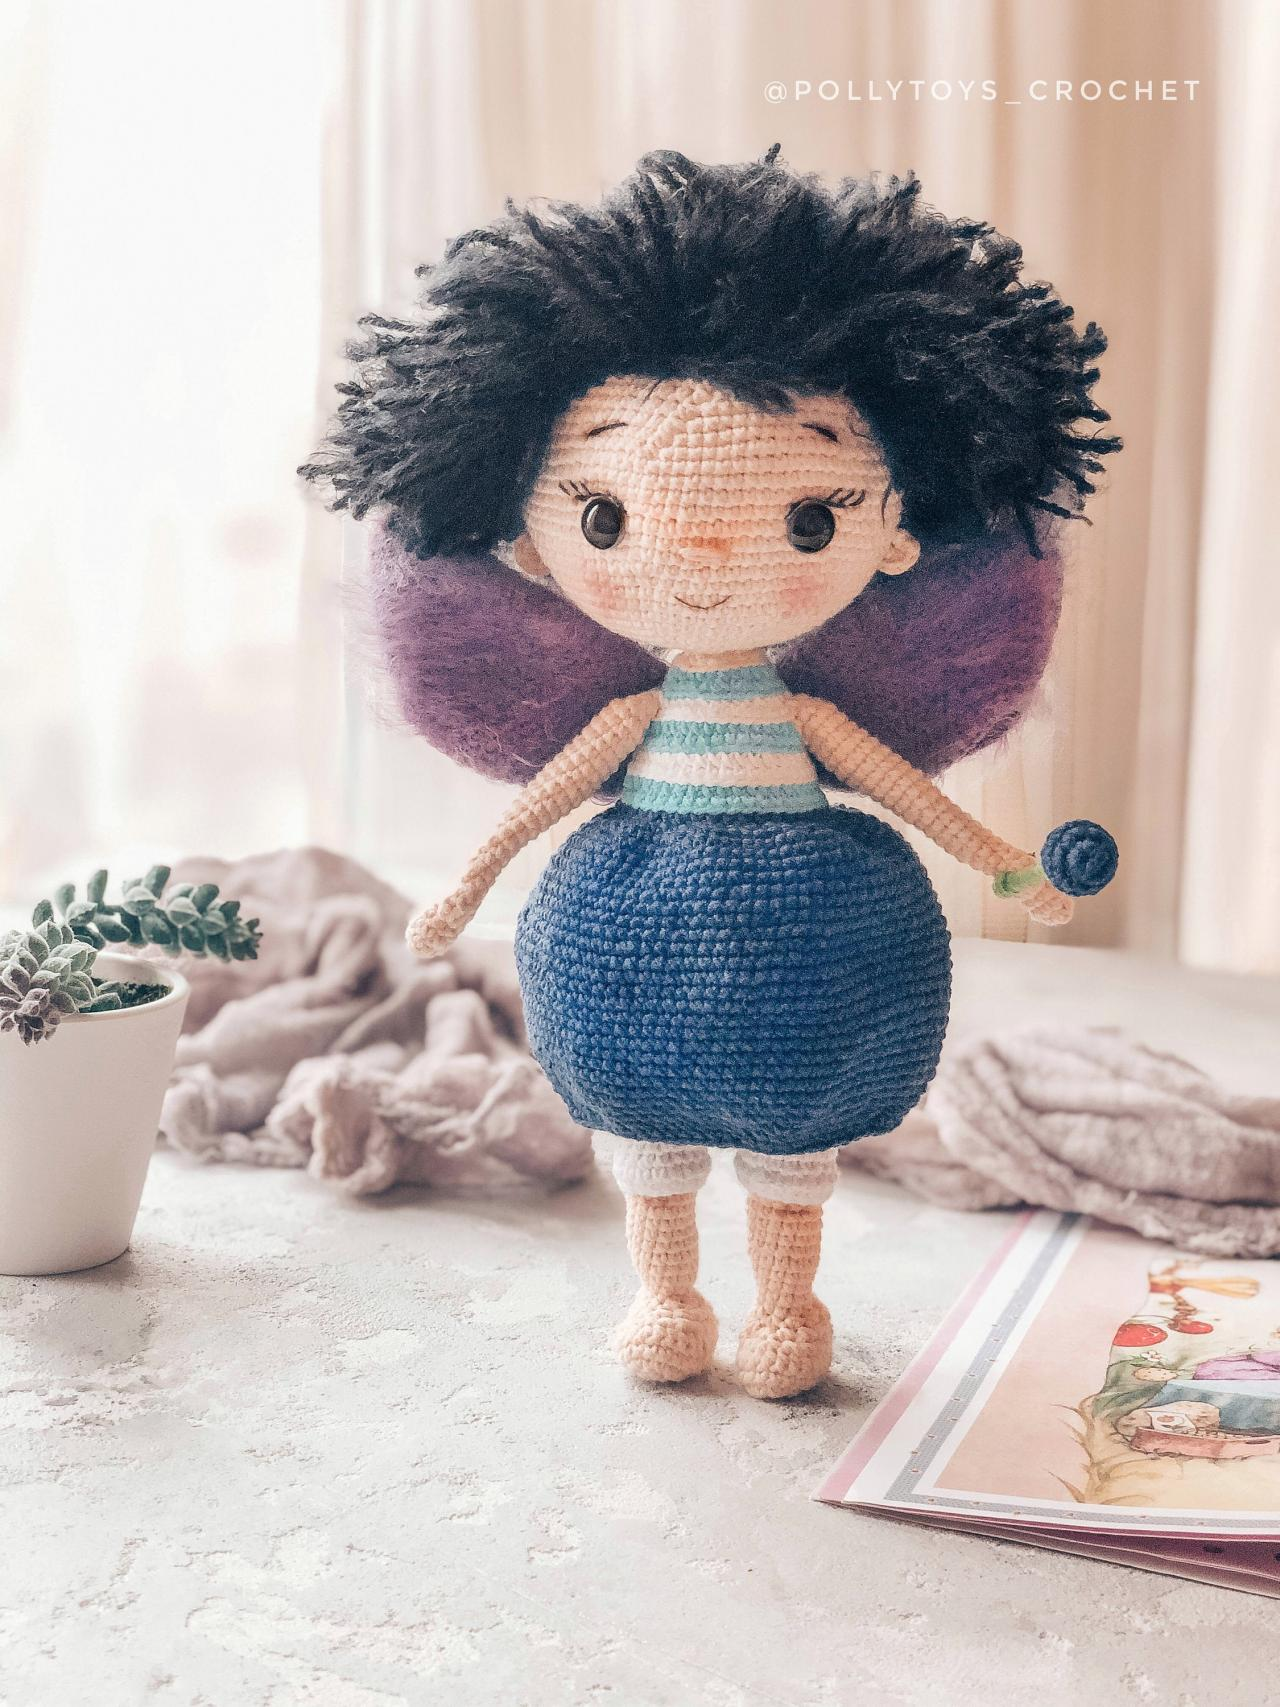 Crochet PATTERN doll blueberry fairy amigurumi crochet toy amigurumi doll crochet fairy crochet doll crochet patterns amigurumi pattern